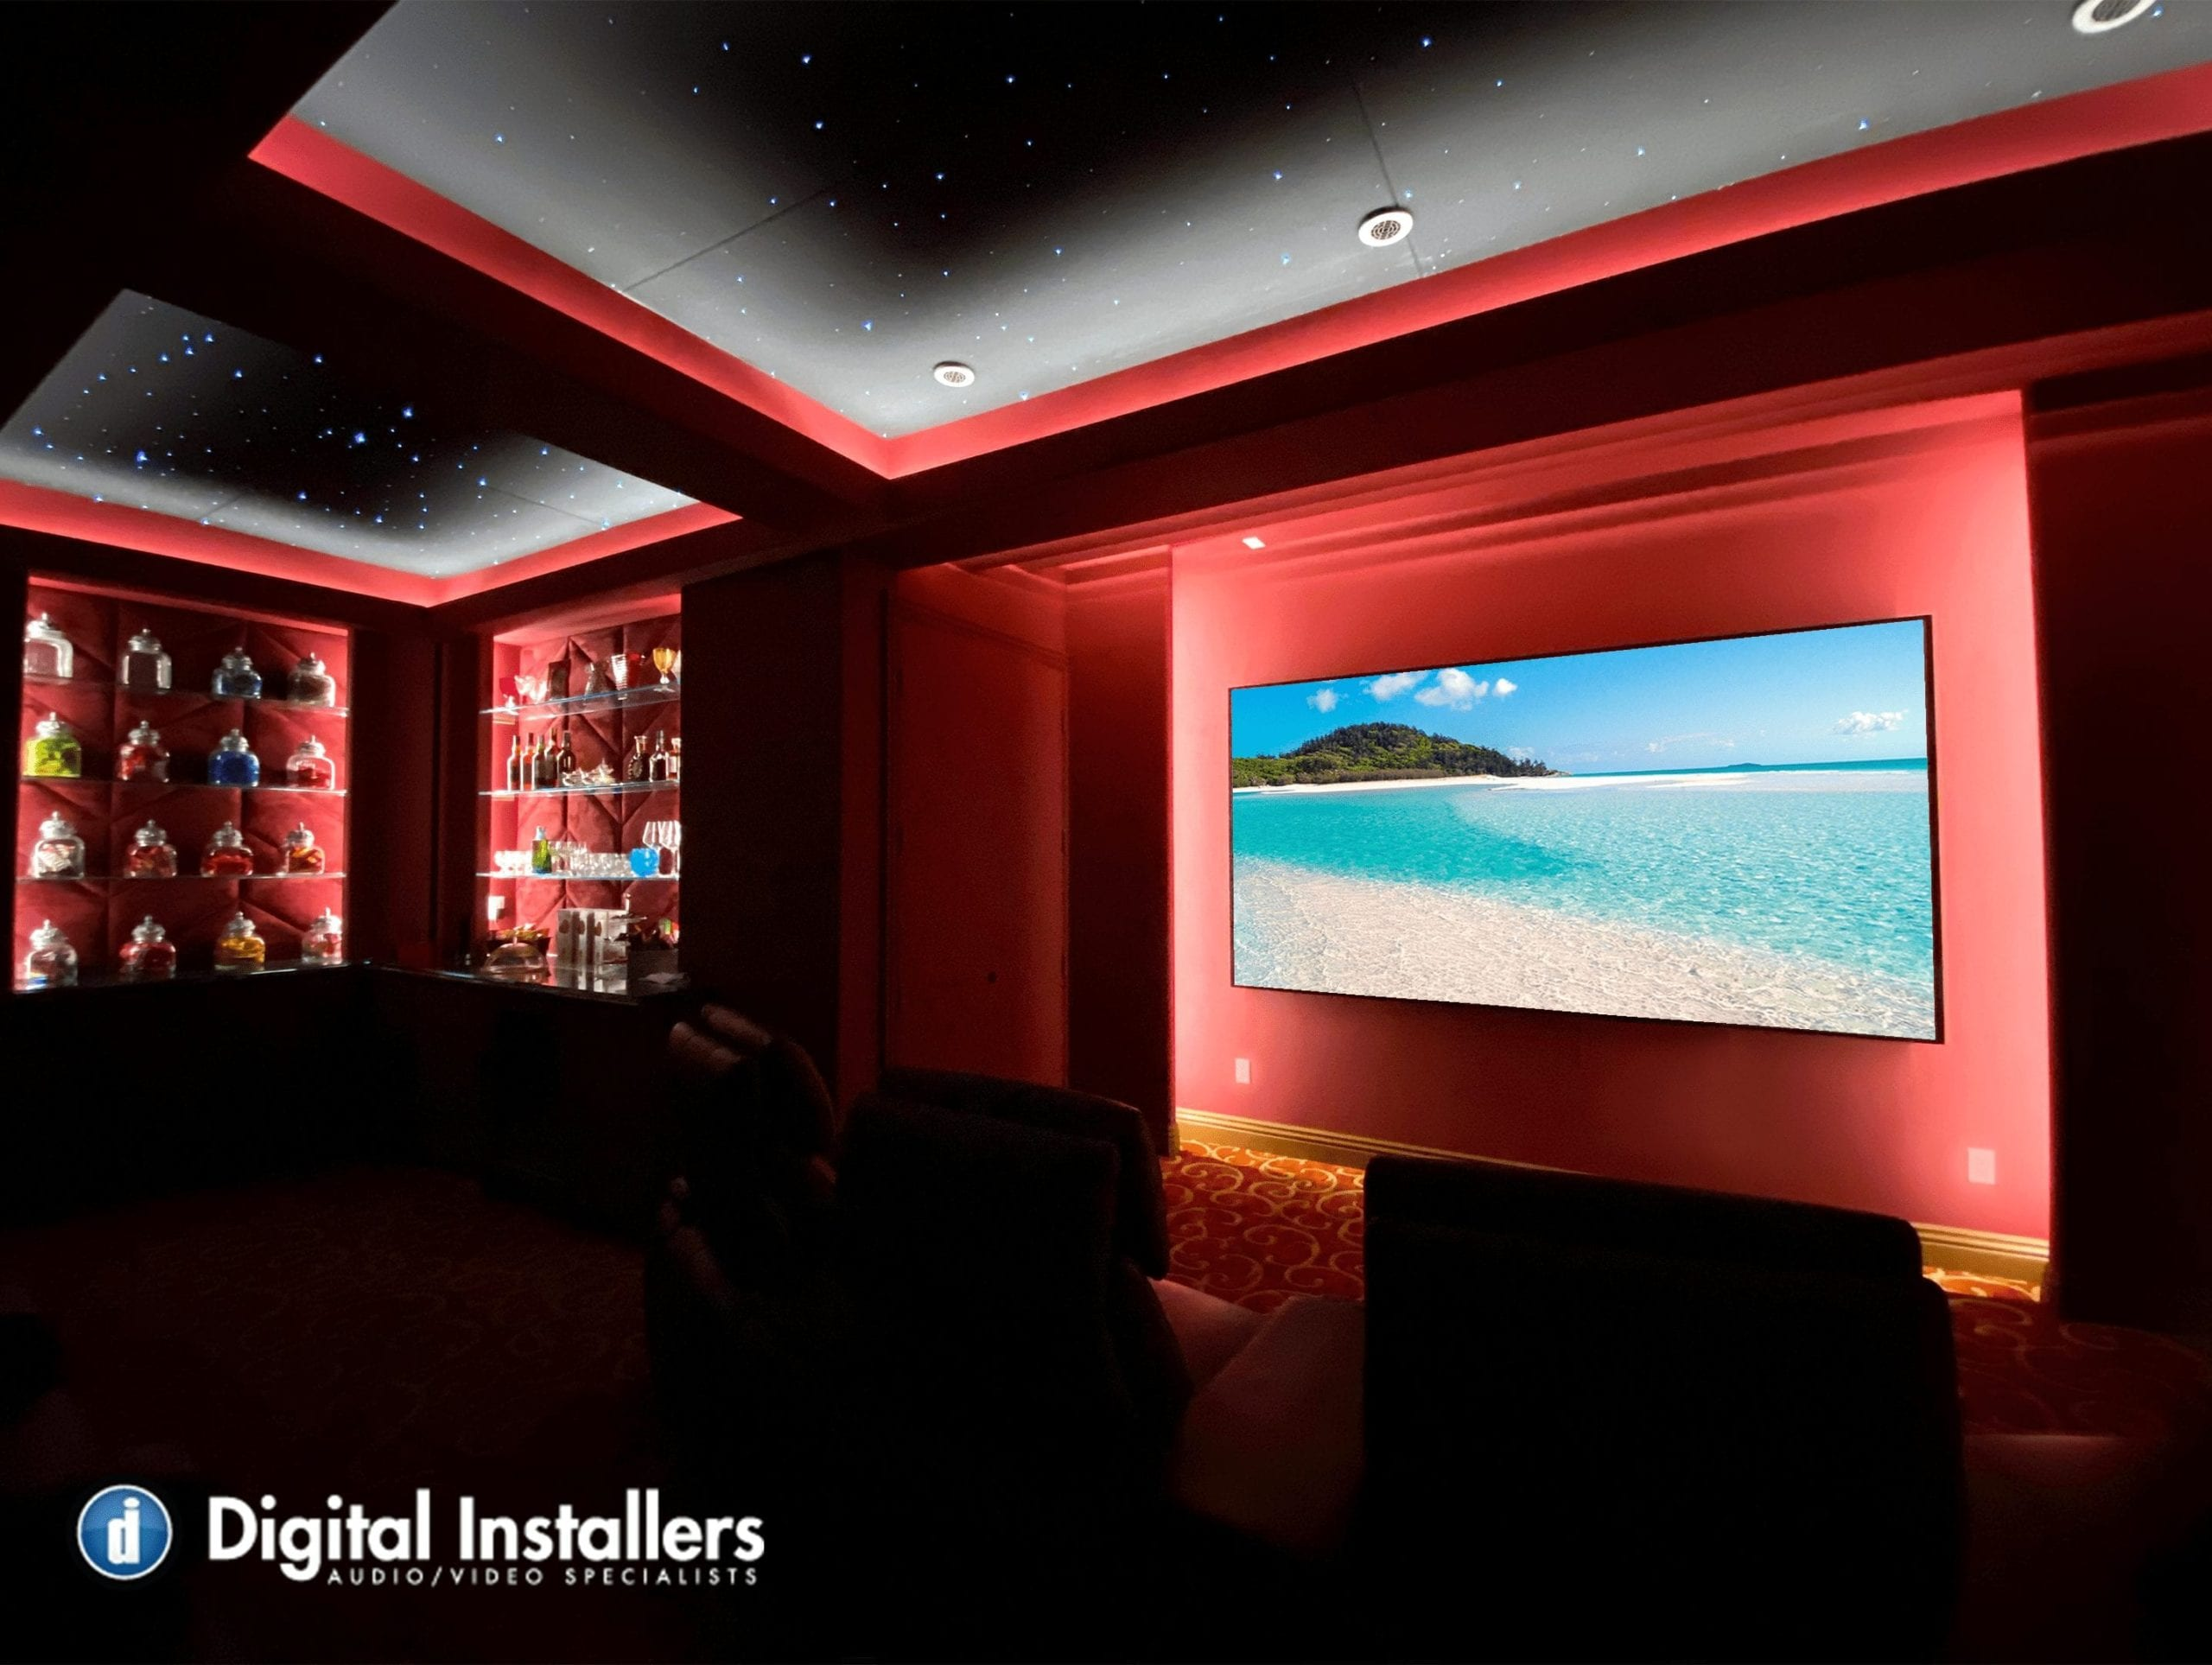 Home theater star ceiling red acoustics screen innovations sony